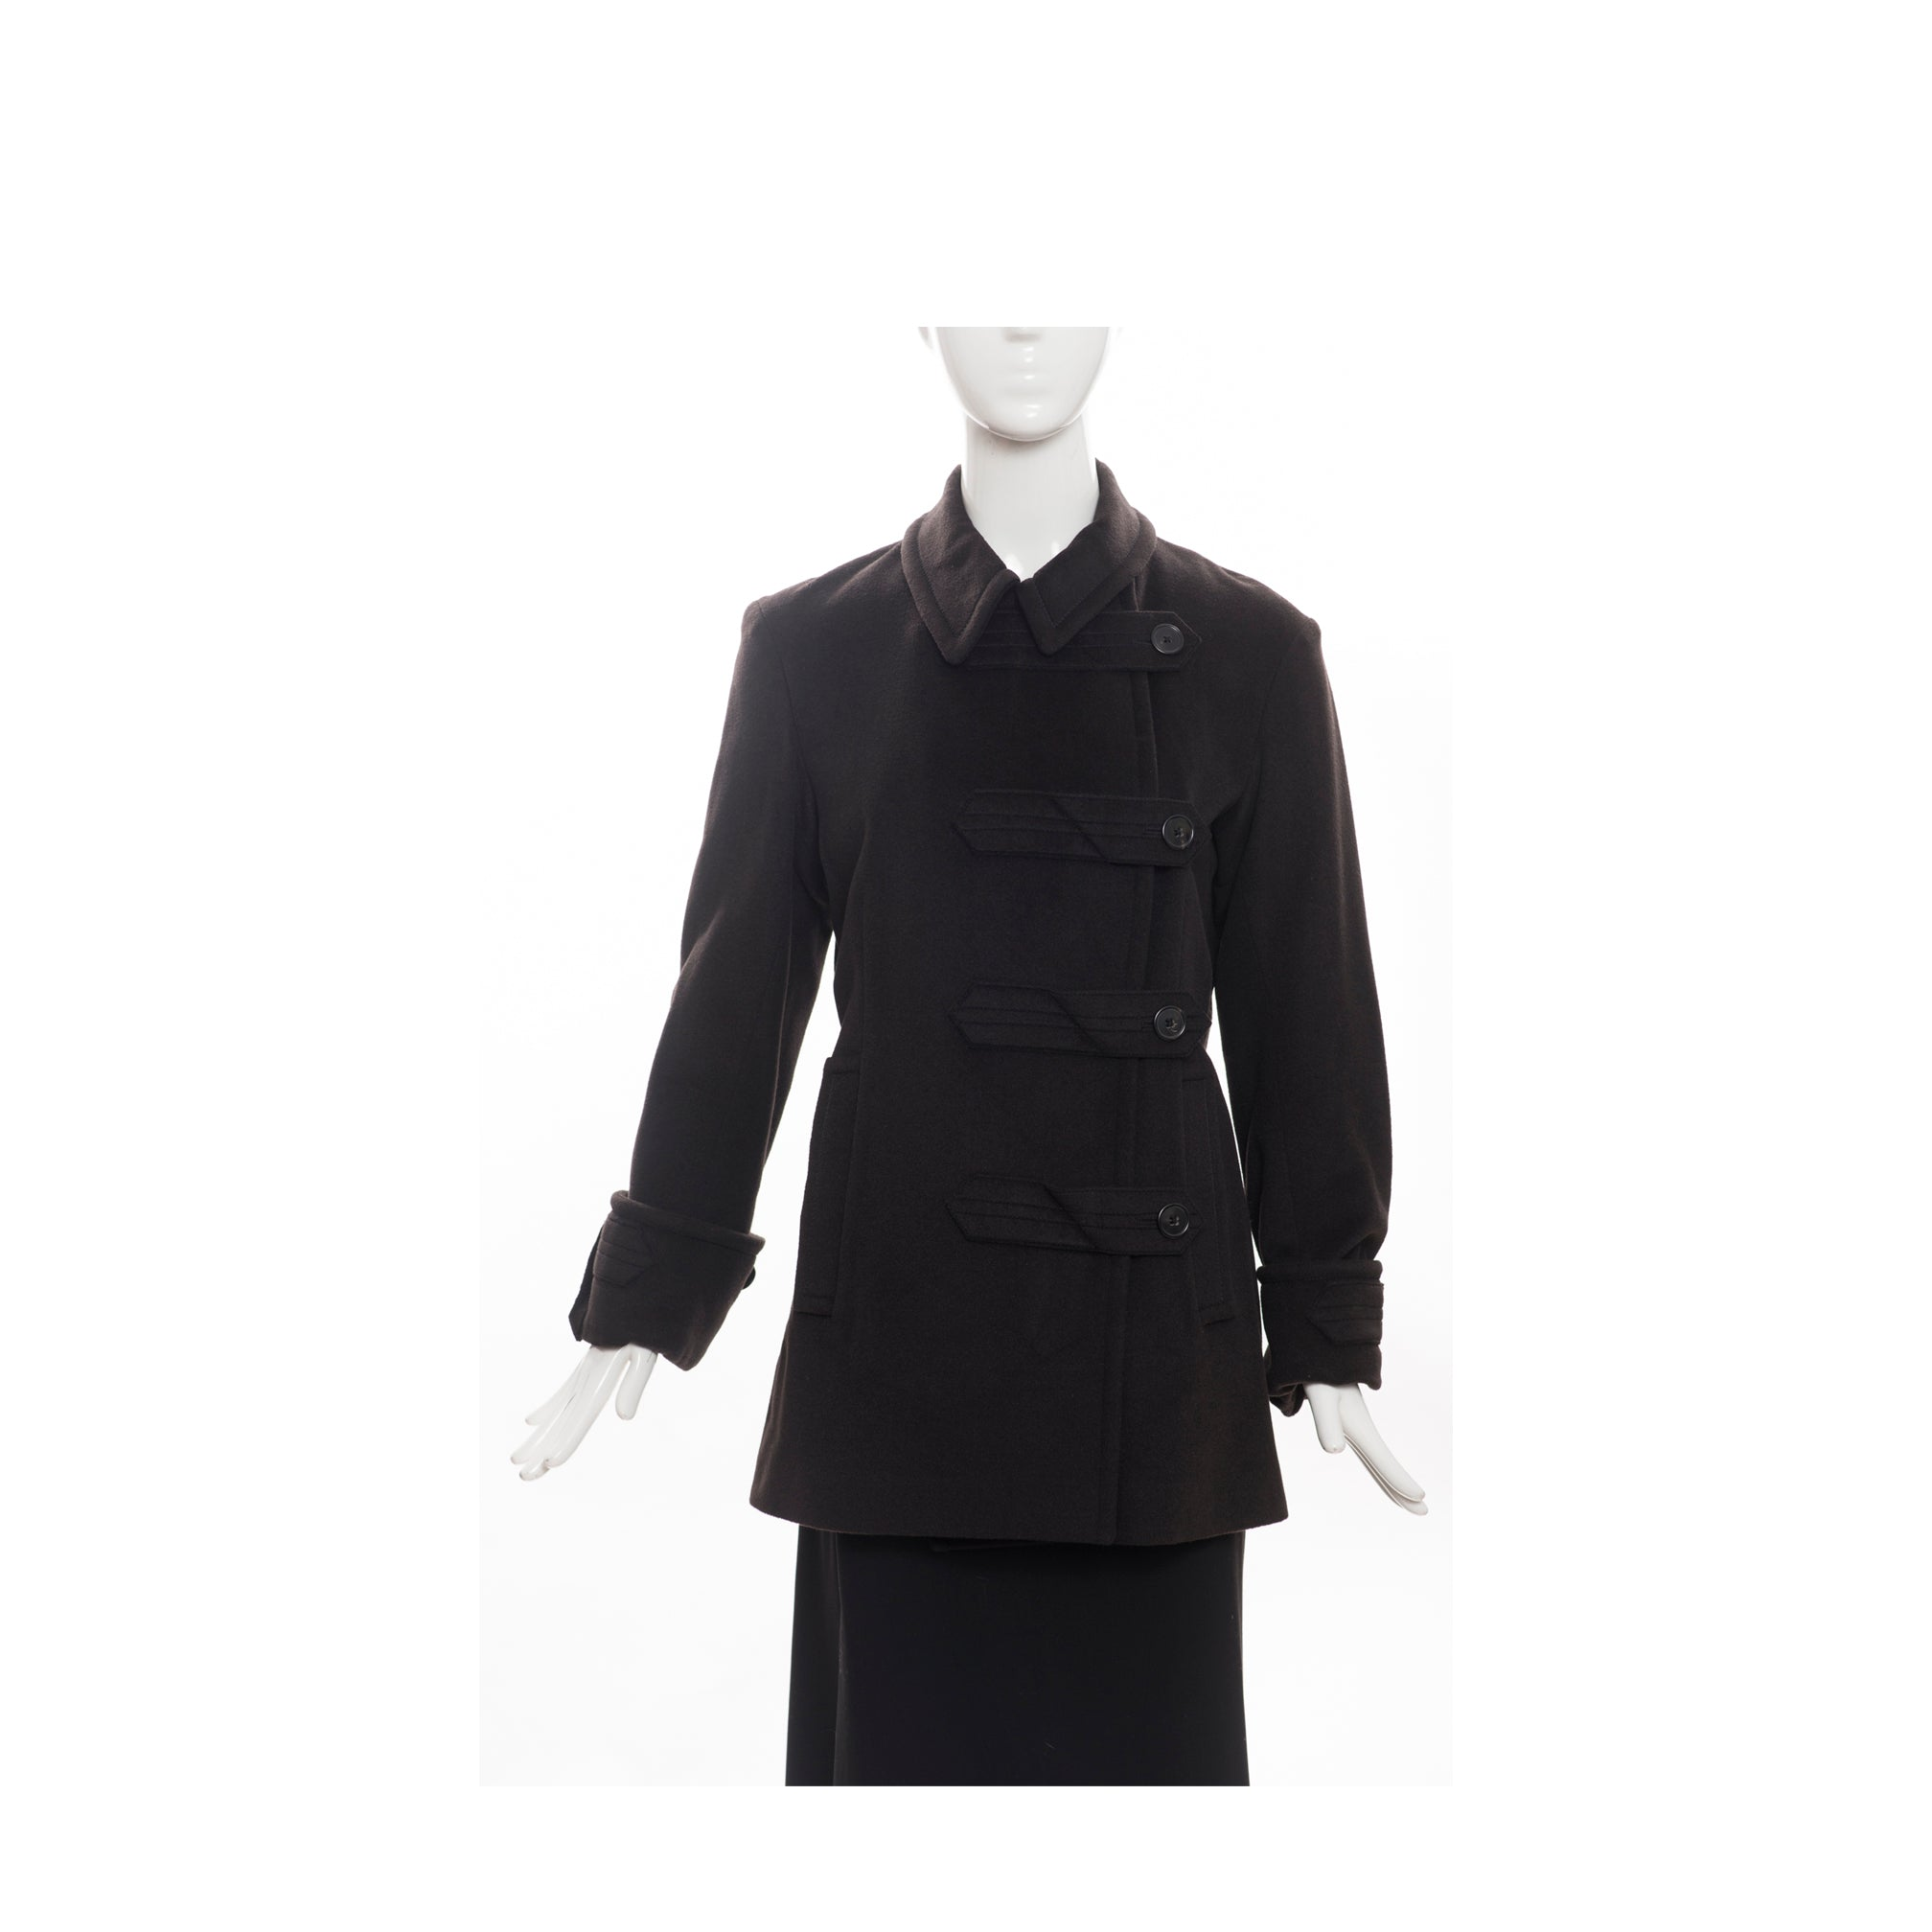 JIL SANDER Black Asymmetric / Off Center Double Breasted Wool Angora Coat 38 GUC